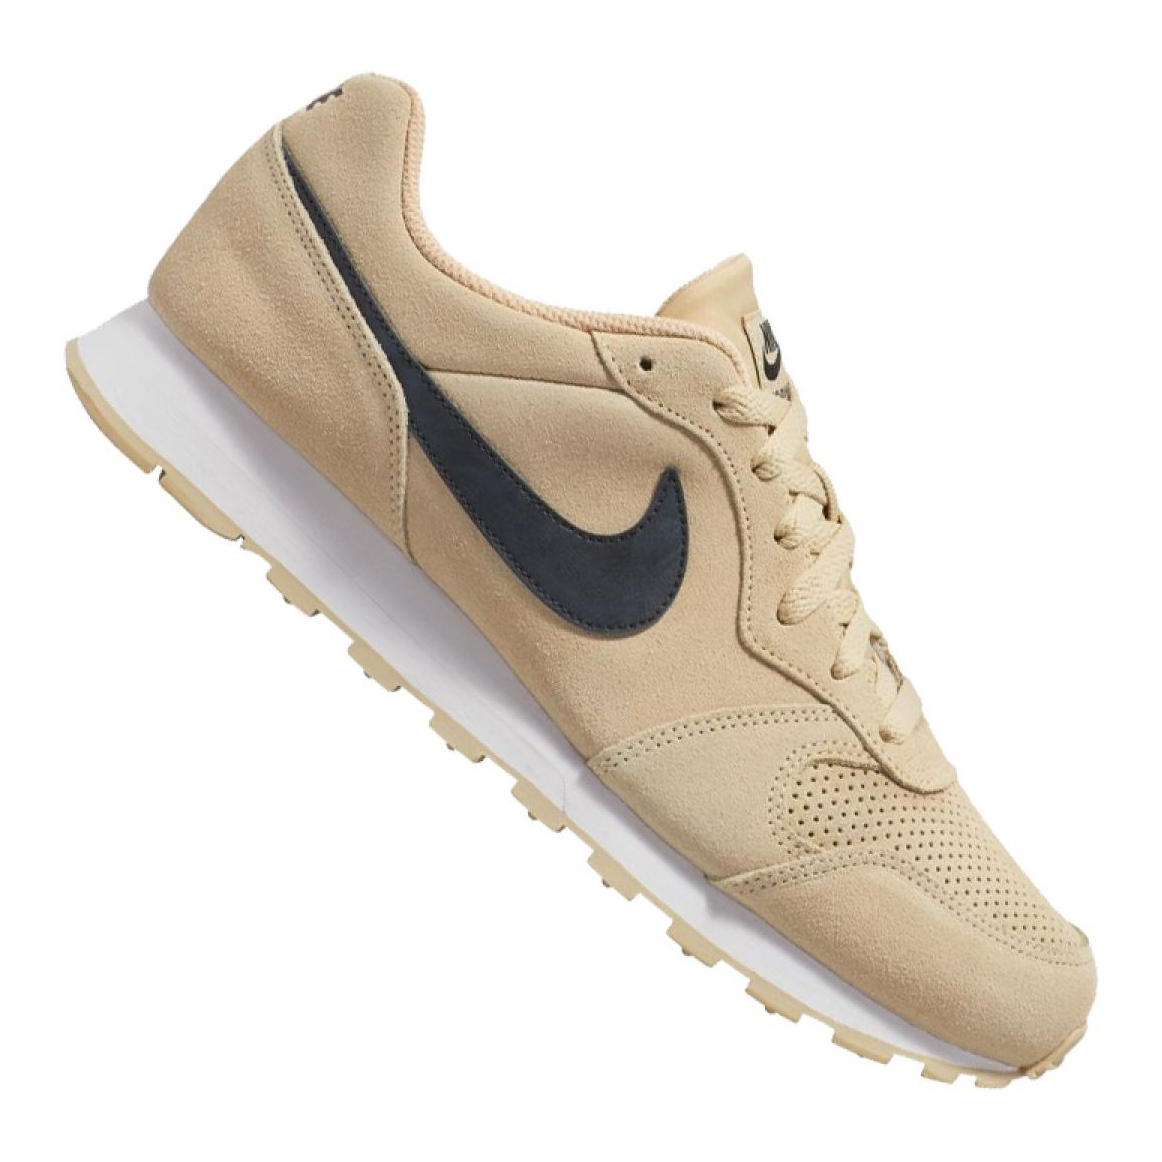 Nike M Md Suede AQ9211 about shoes 2 Runner brown 700 Details YDIeEH29W